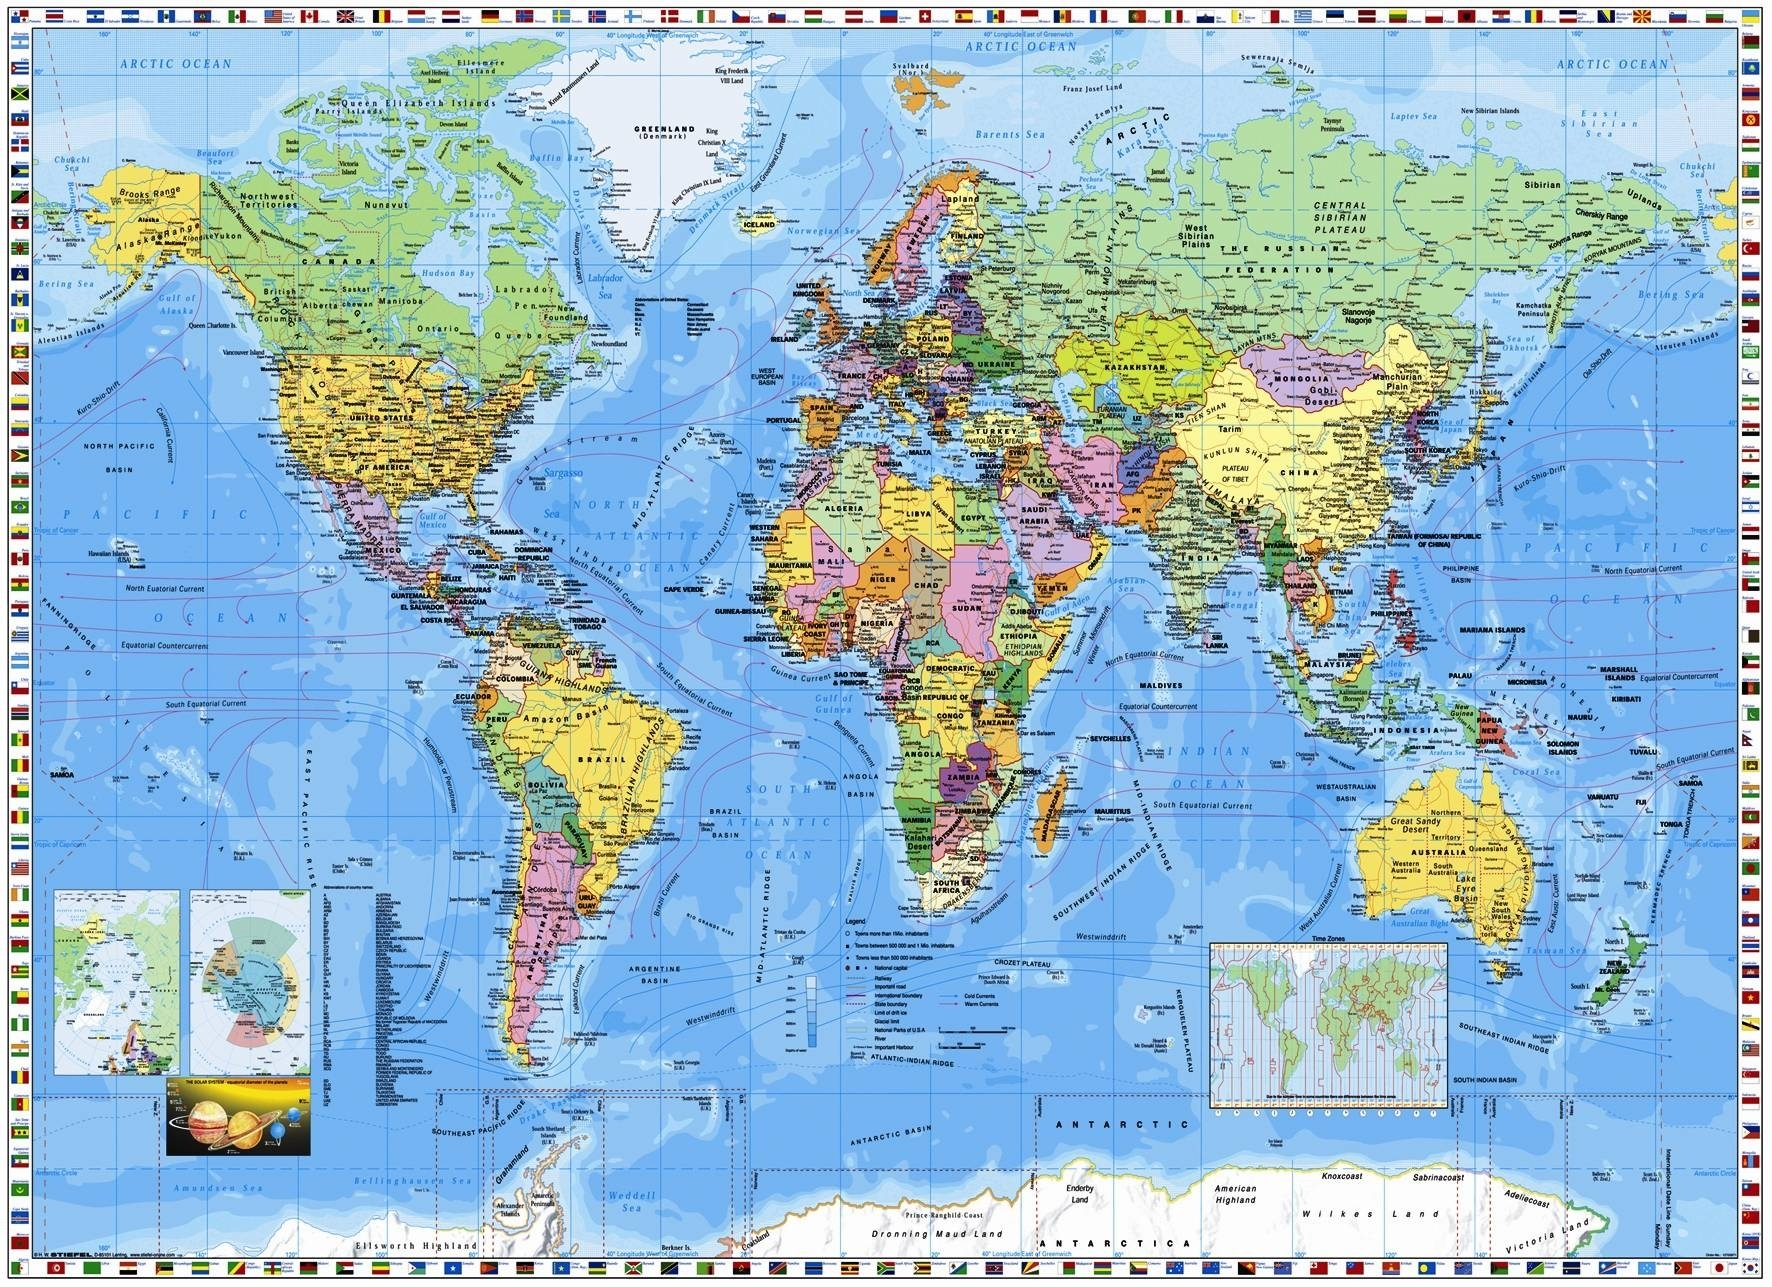 title world map wallpapers high resolution wallpaper cave dimension 1772 x 1287 file type jpgjpeg